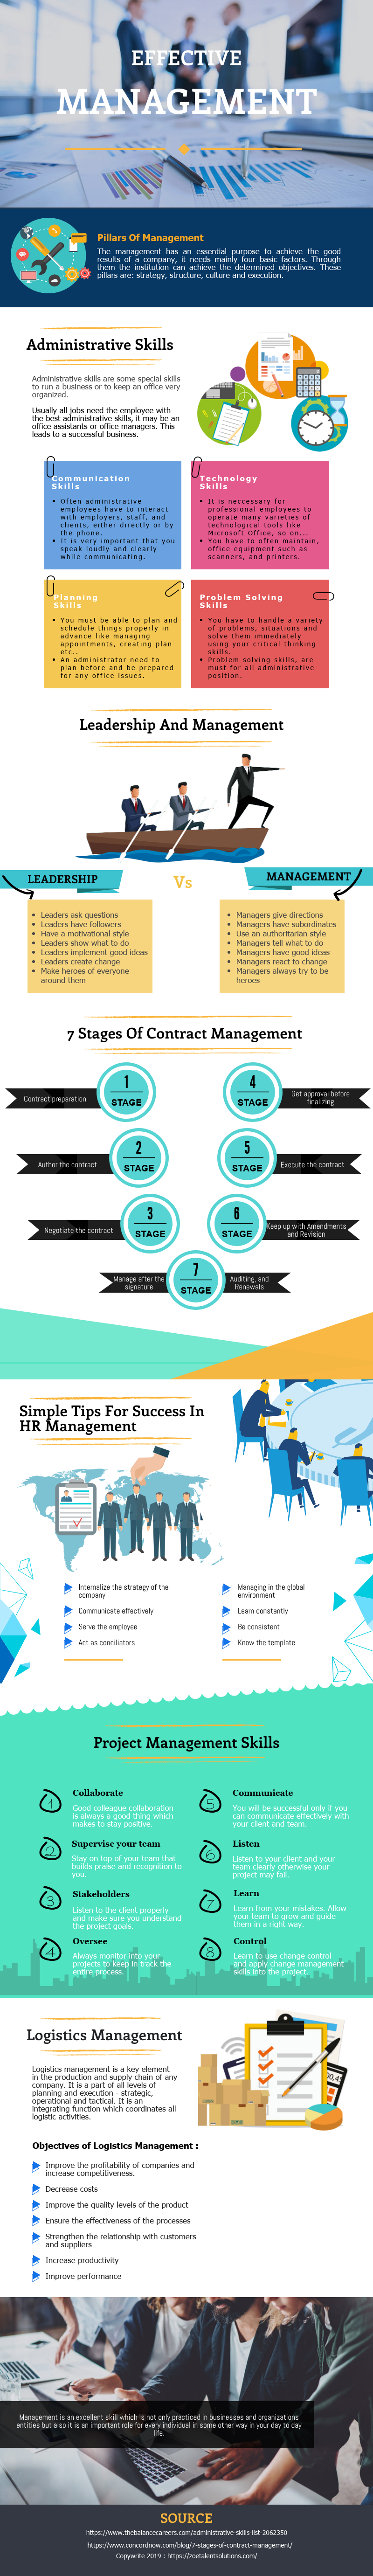 Techniques of Effective HR in the company